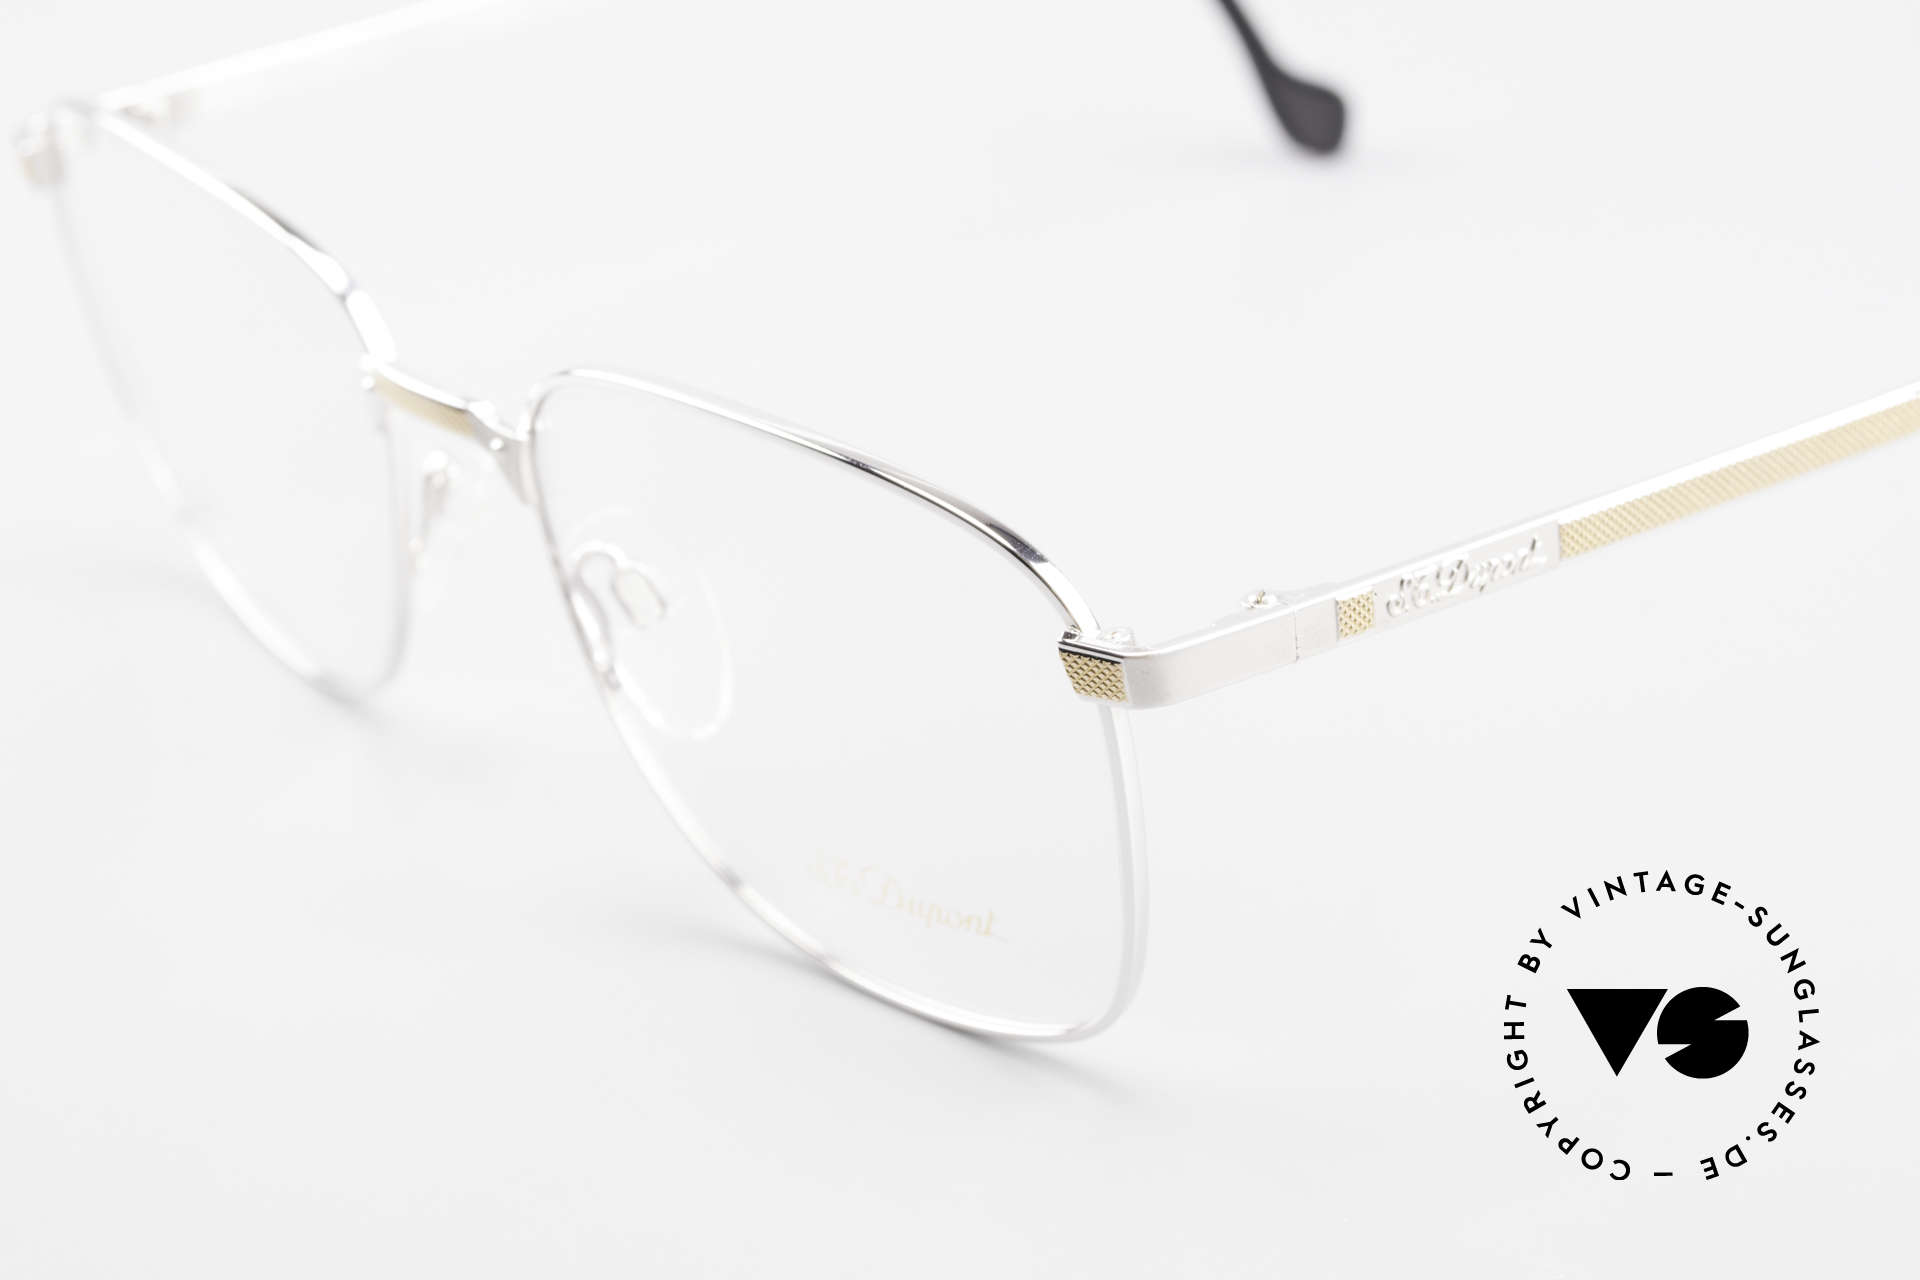 S.T. Dupont D048 Classic Luxury Eyeglasses 23kt, incl. original S.T. Dupont cloth, hard case and packing, Made for Men